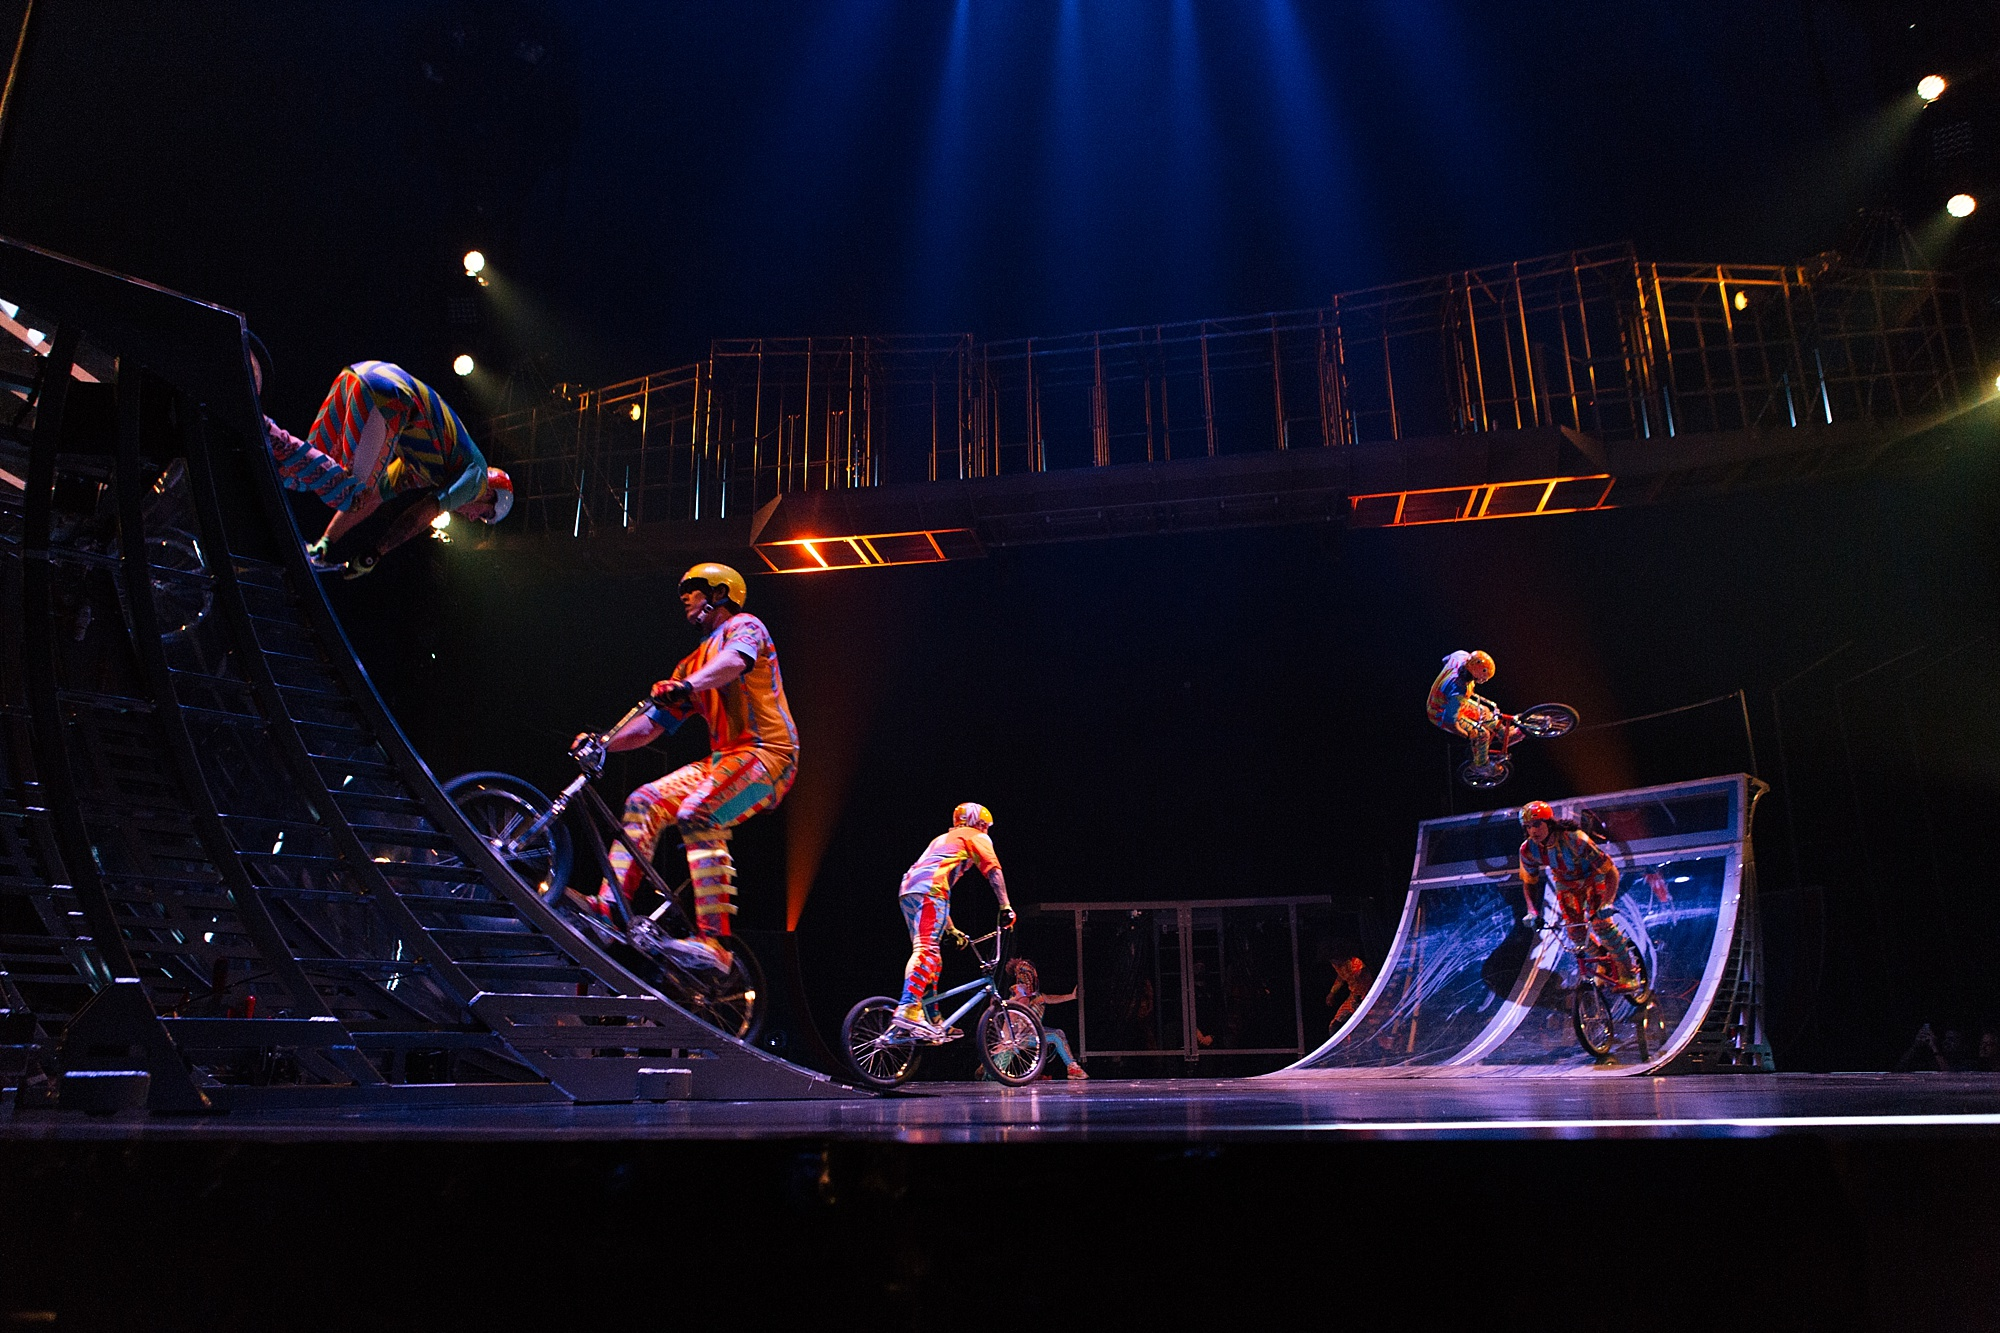 Joe_Mac_Creative_cirque_du_soleil_volta_Greater Philadelphia_Expo_Center_Oaks_PA_Visit_Valley _Forge_0033.jpg